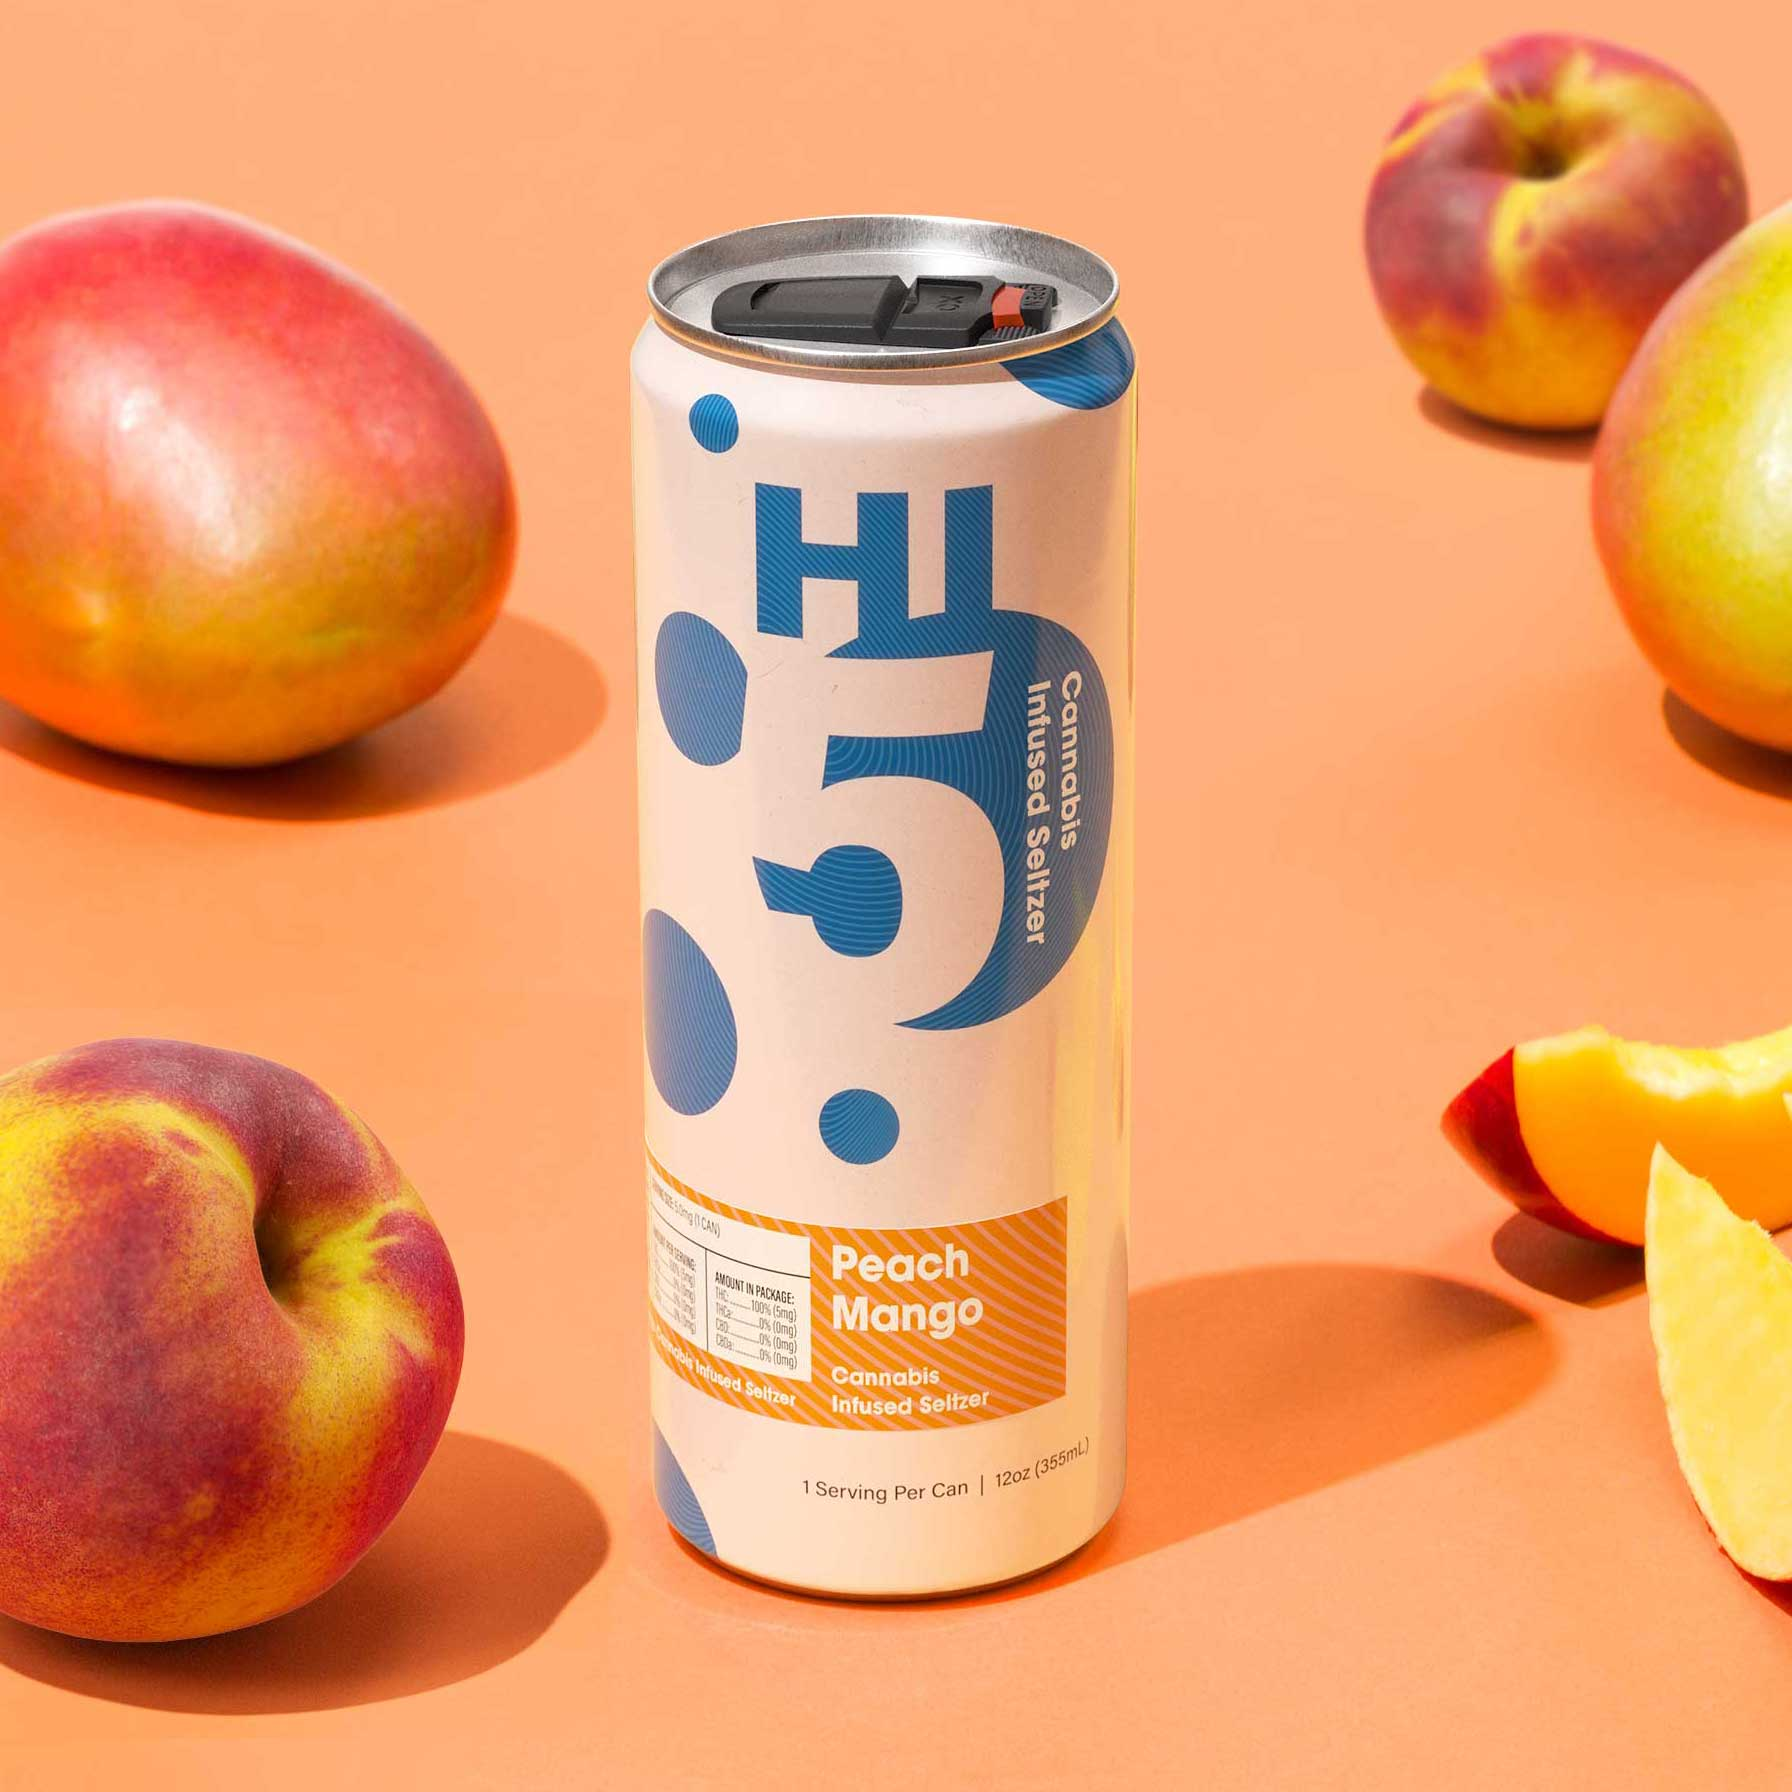 Peach Mango Hi5 surrounded by cut peaches and mangoes.